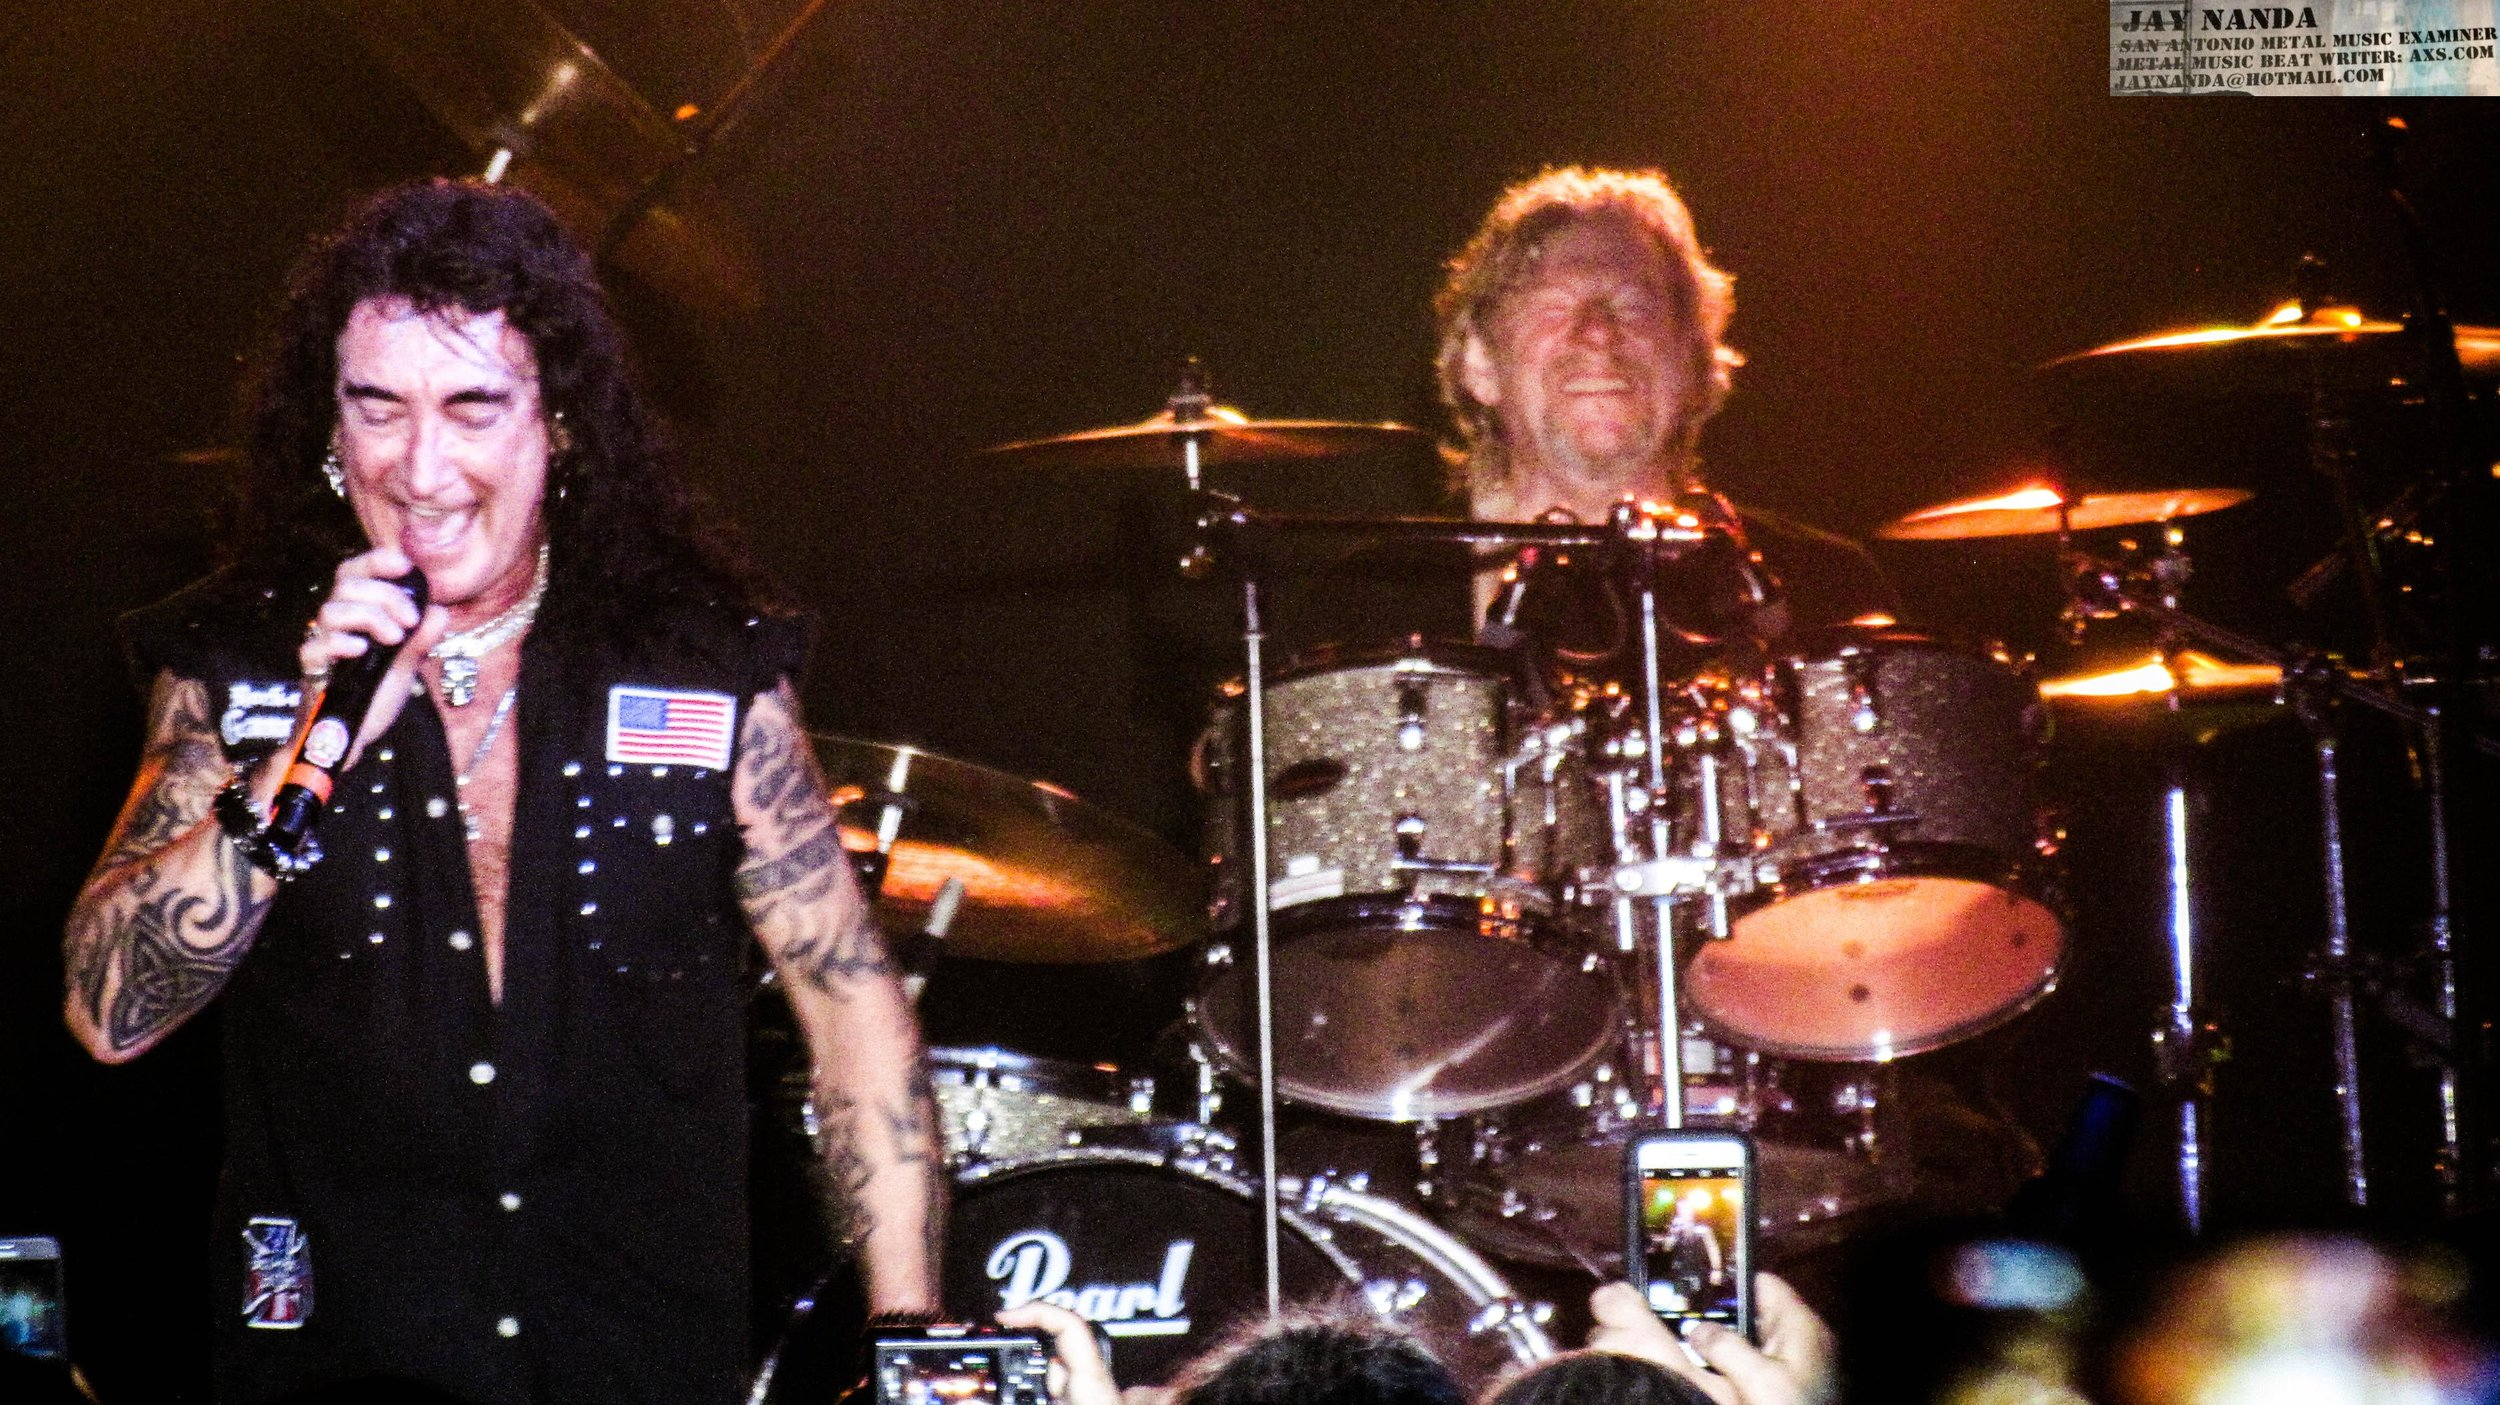 """McAuley sings one of his 1989 tracks with McAuley Schenker Group, """"Bad Boys,"""" while McKenna provides the drum work."""